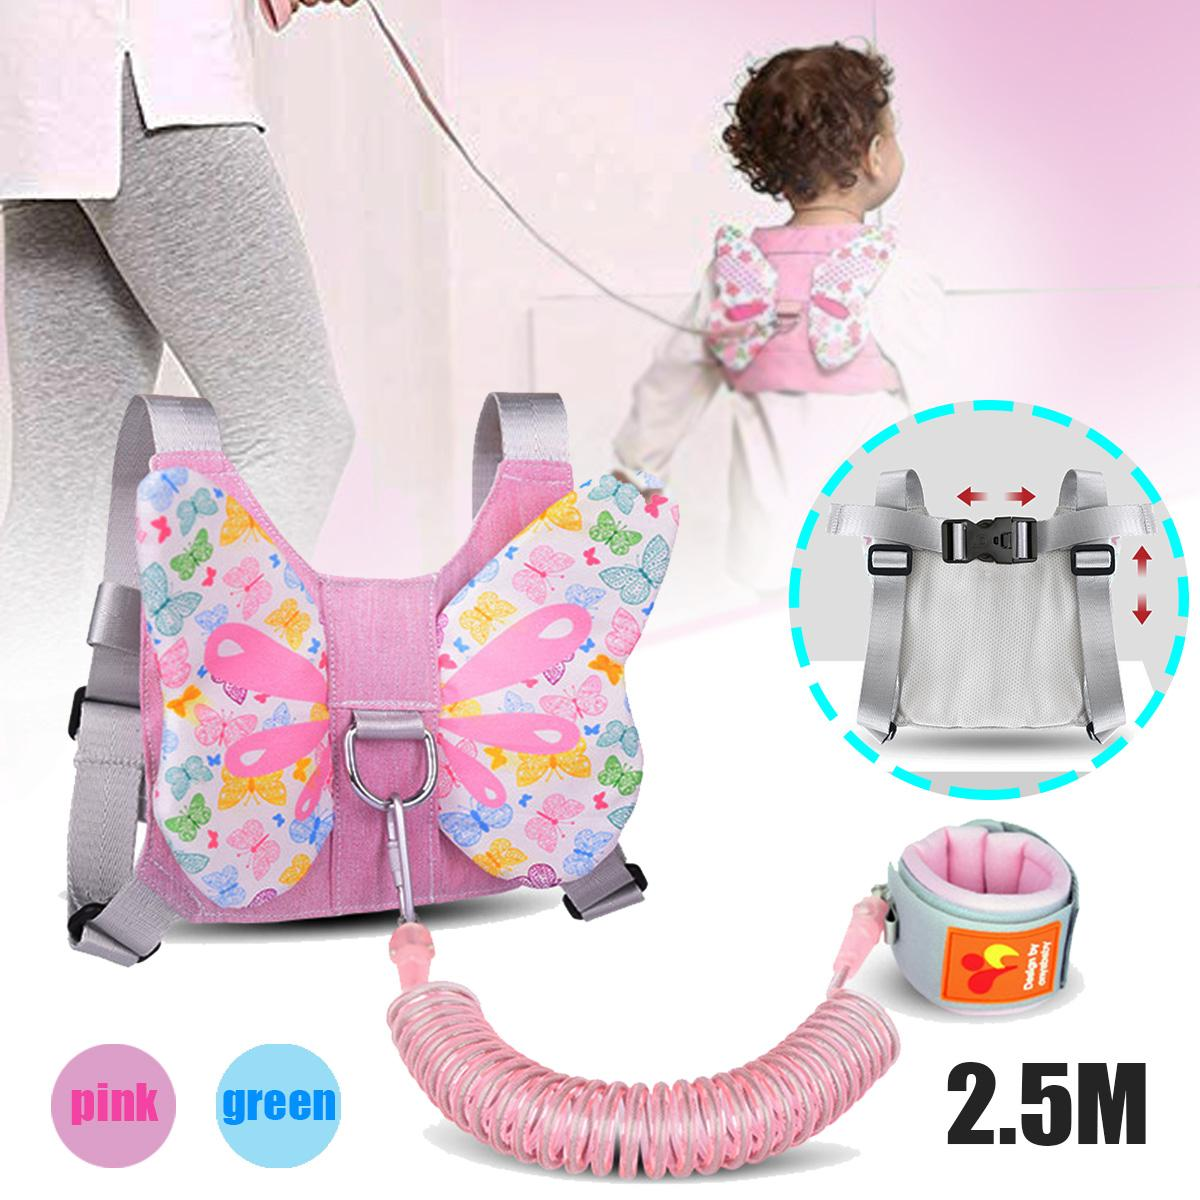 Anti Lost Wrist Link Wings Shaped Back Pack Toddler Leash Safety Harness Baby Strap Wristband Children Walking Hand Belt 2.5M